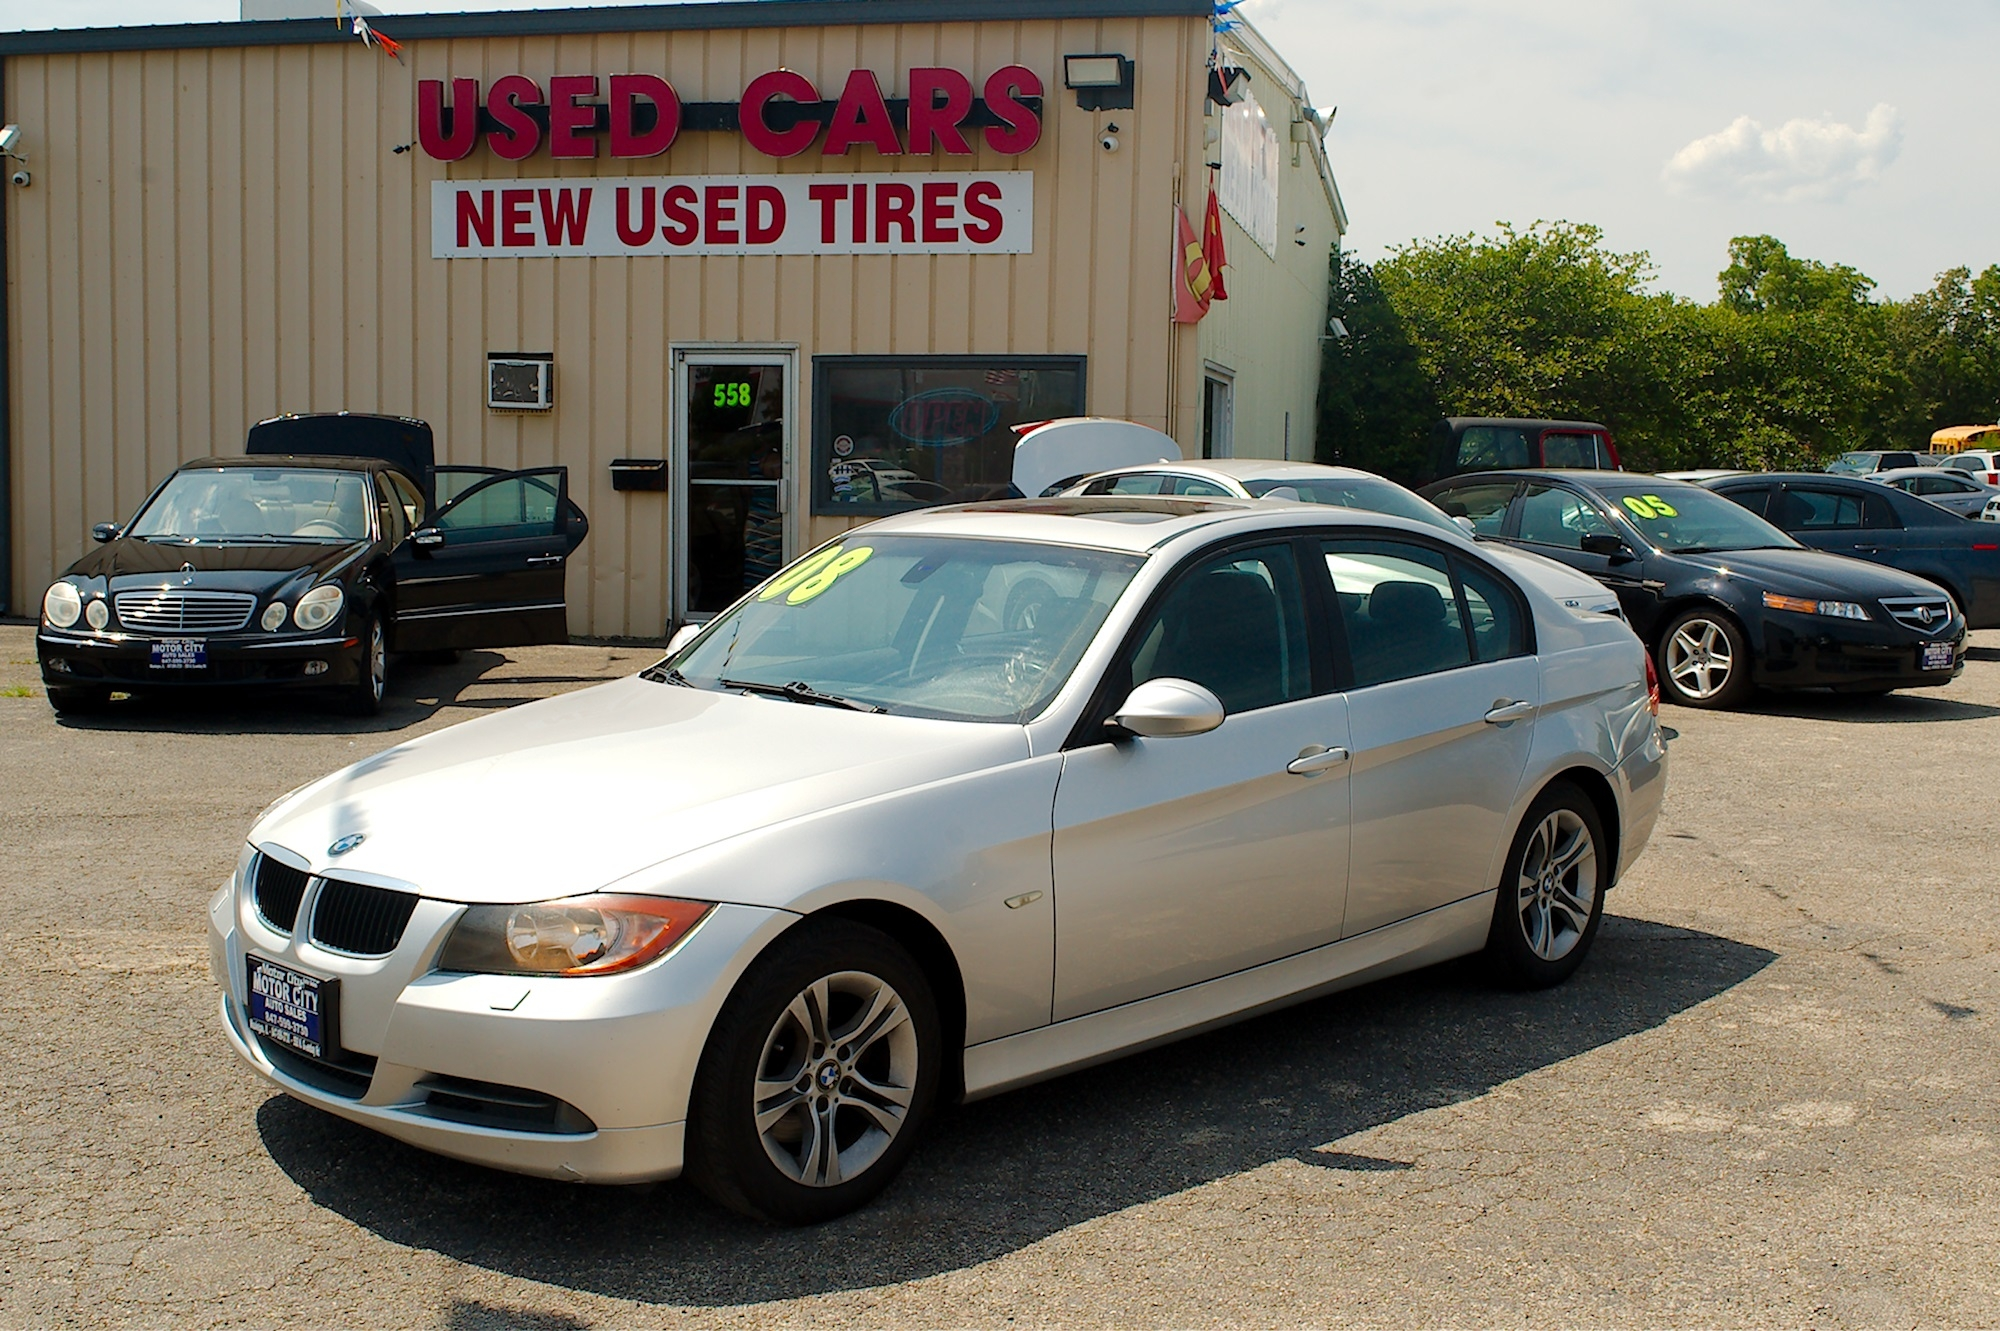 2008 BMW 328xi Gray Sedan Used Car Sale Antioch Zion Waukegan Lake County Illinois